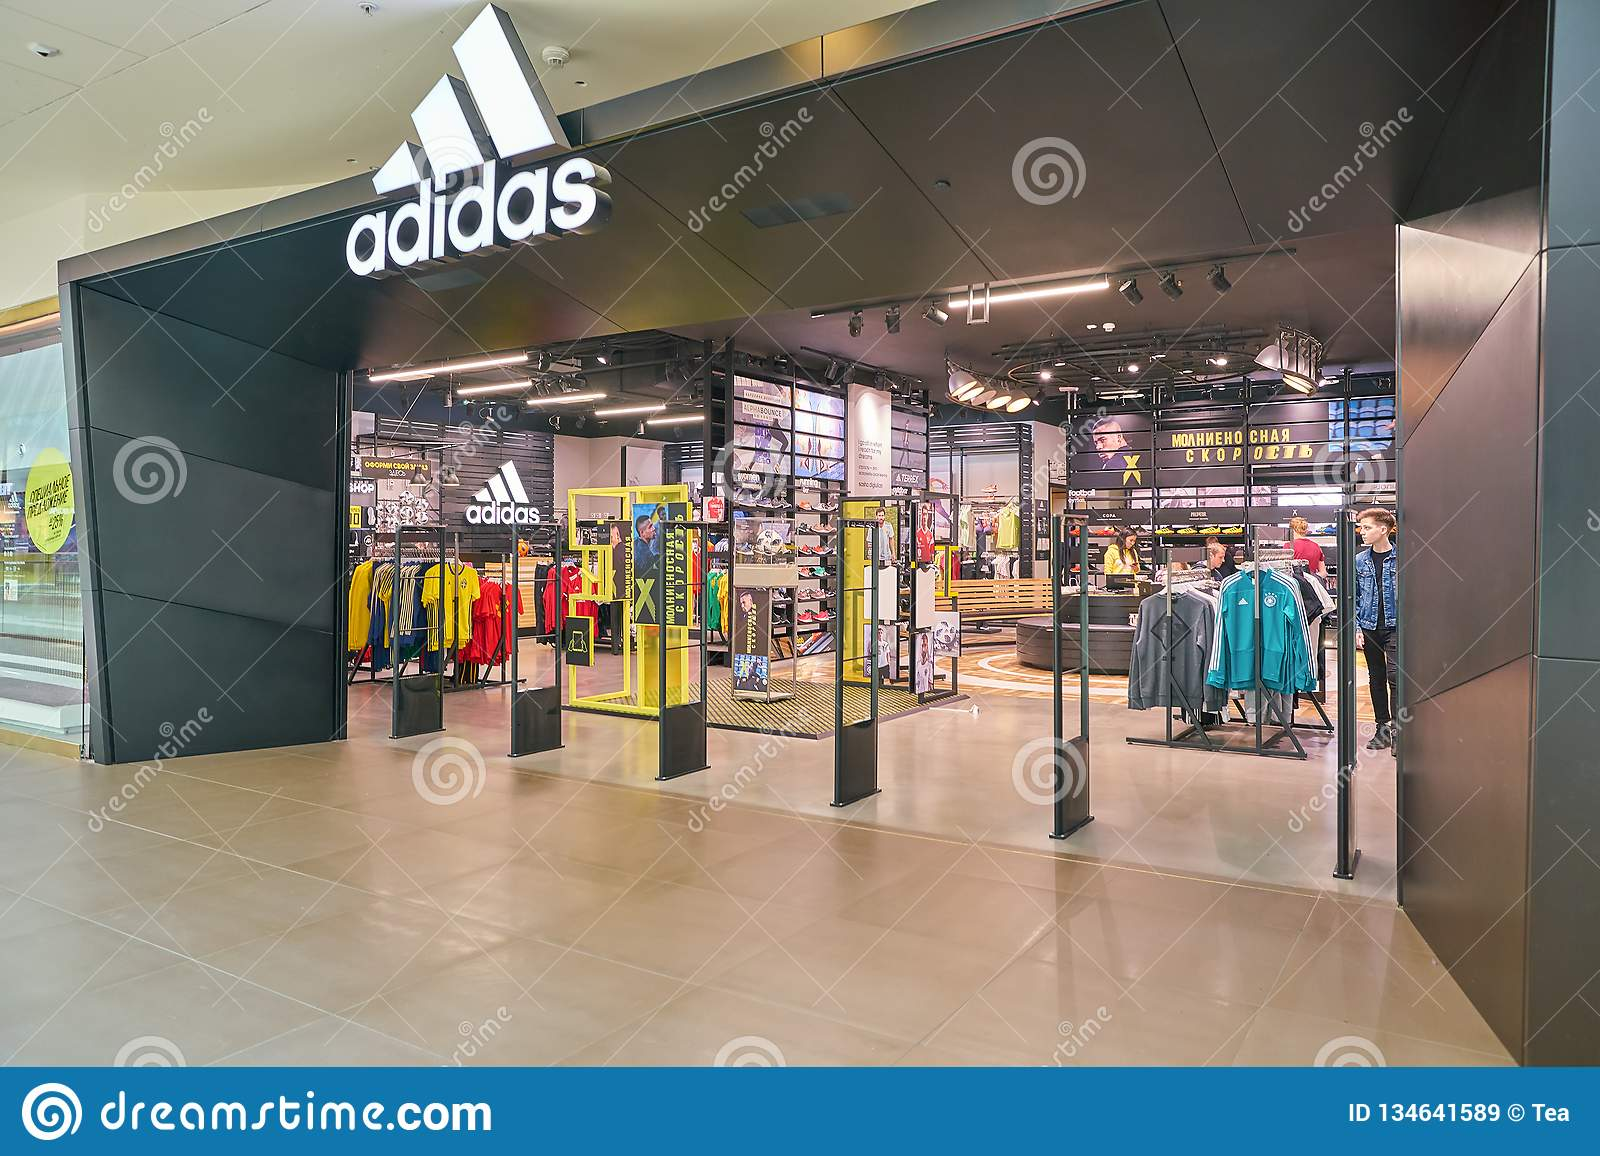 9576071b Adidas store editorial stock image. Image of sale, jogging - 134641589